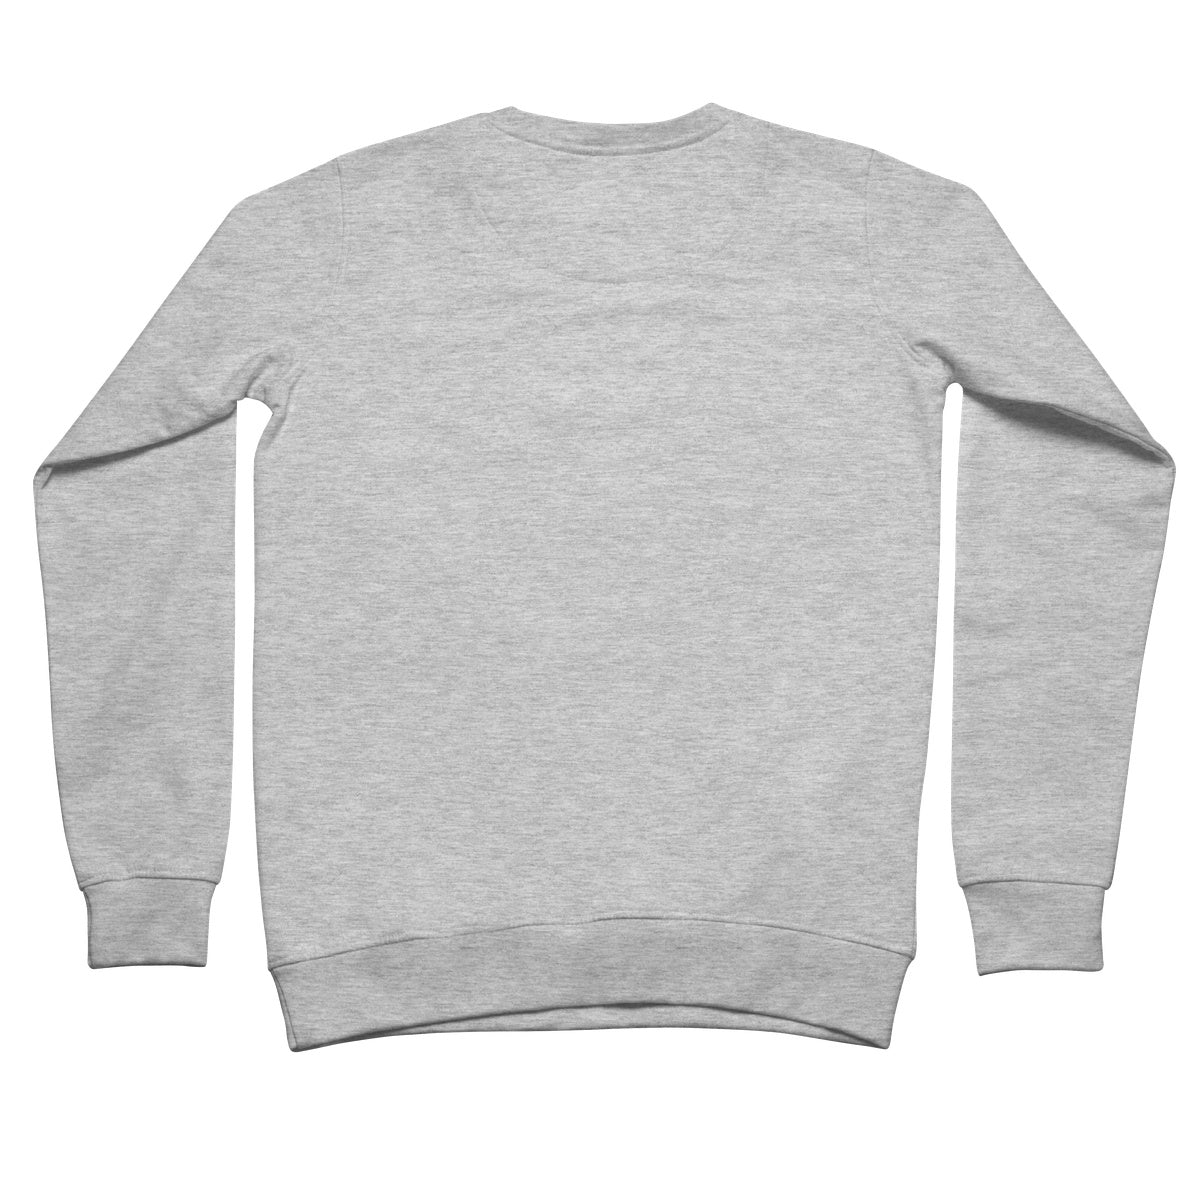 The Cafe Women's Retail Sweatshirt